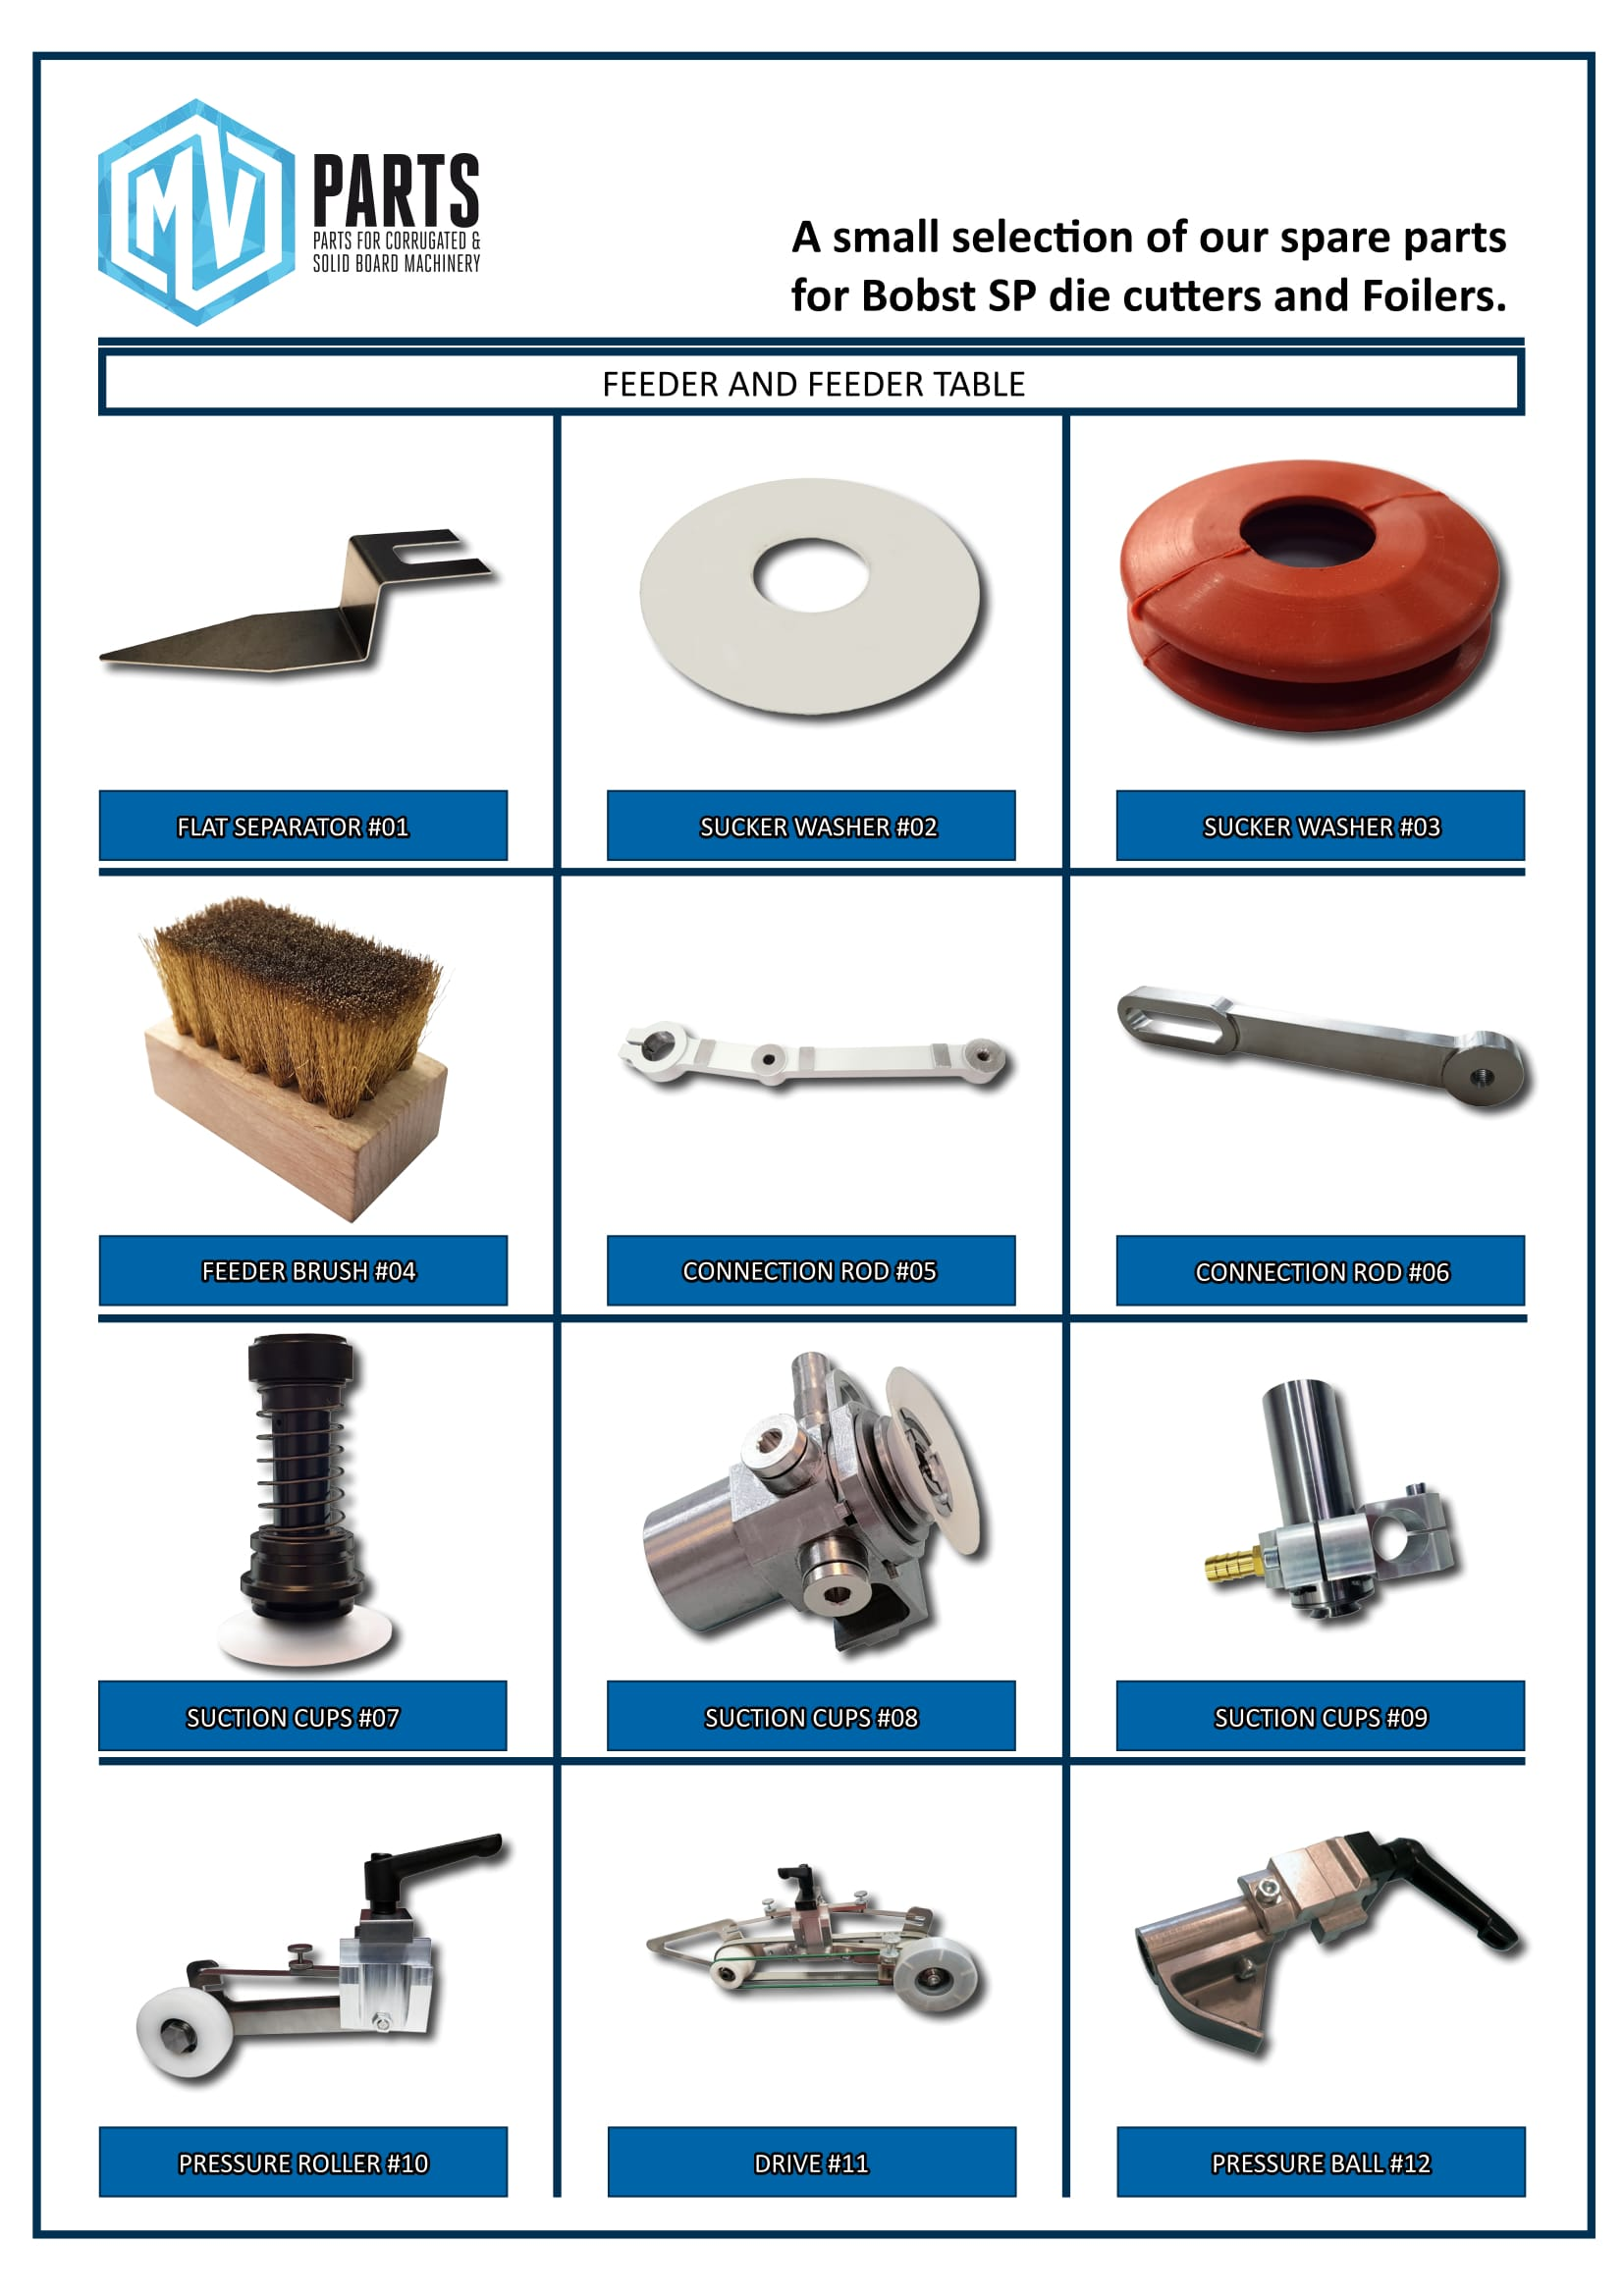 MV-Parts - parts for diecutters-1